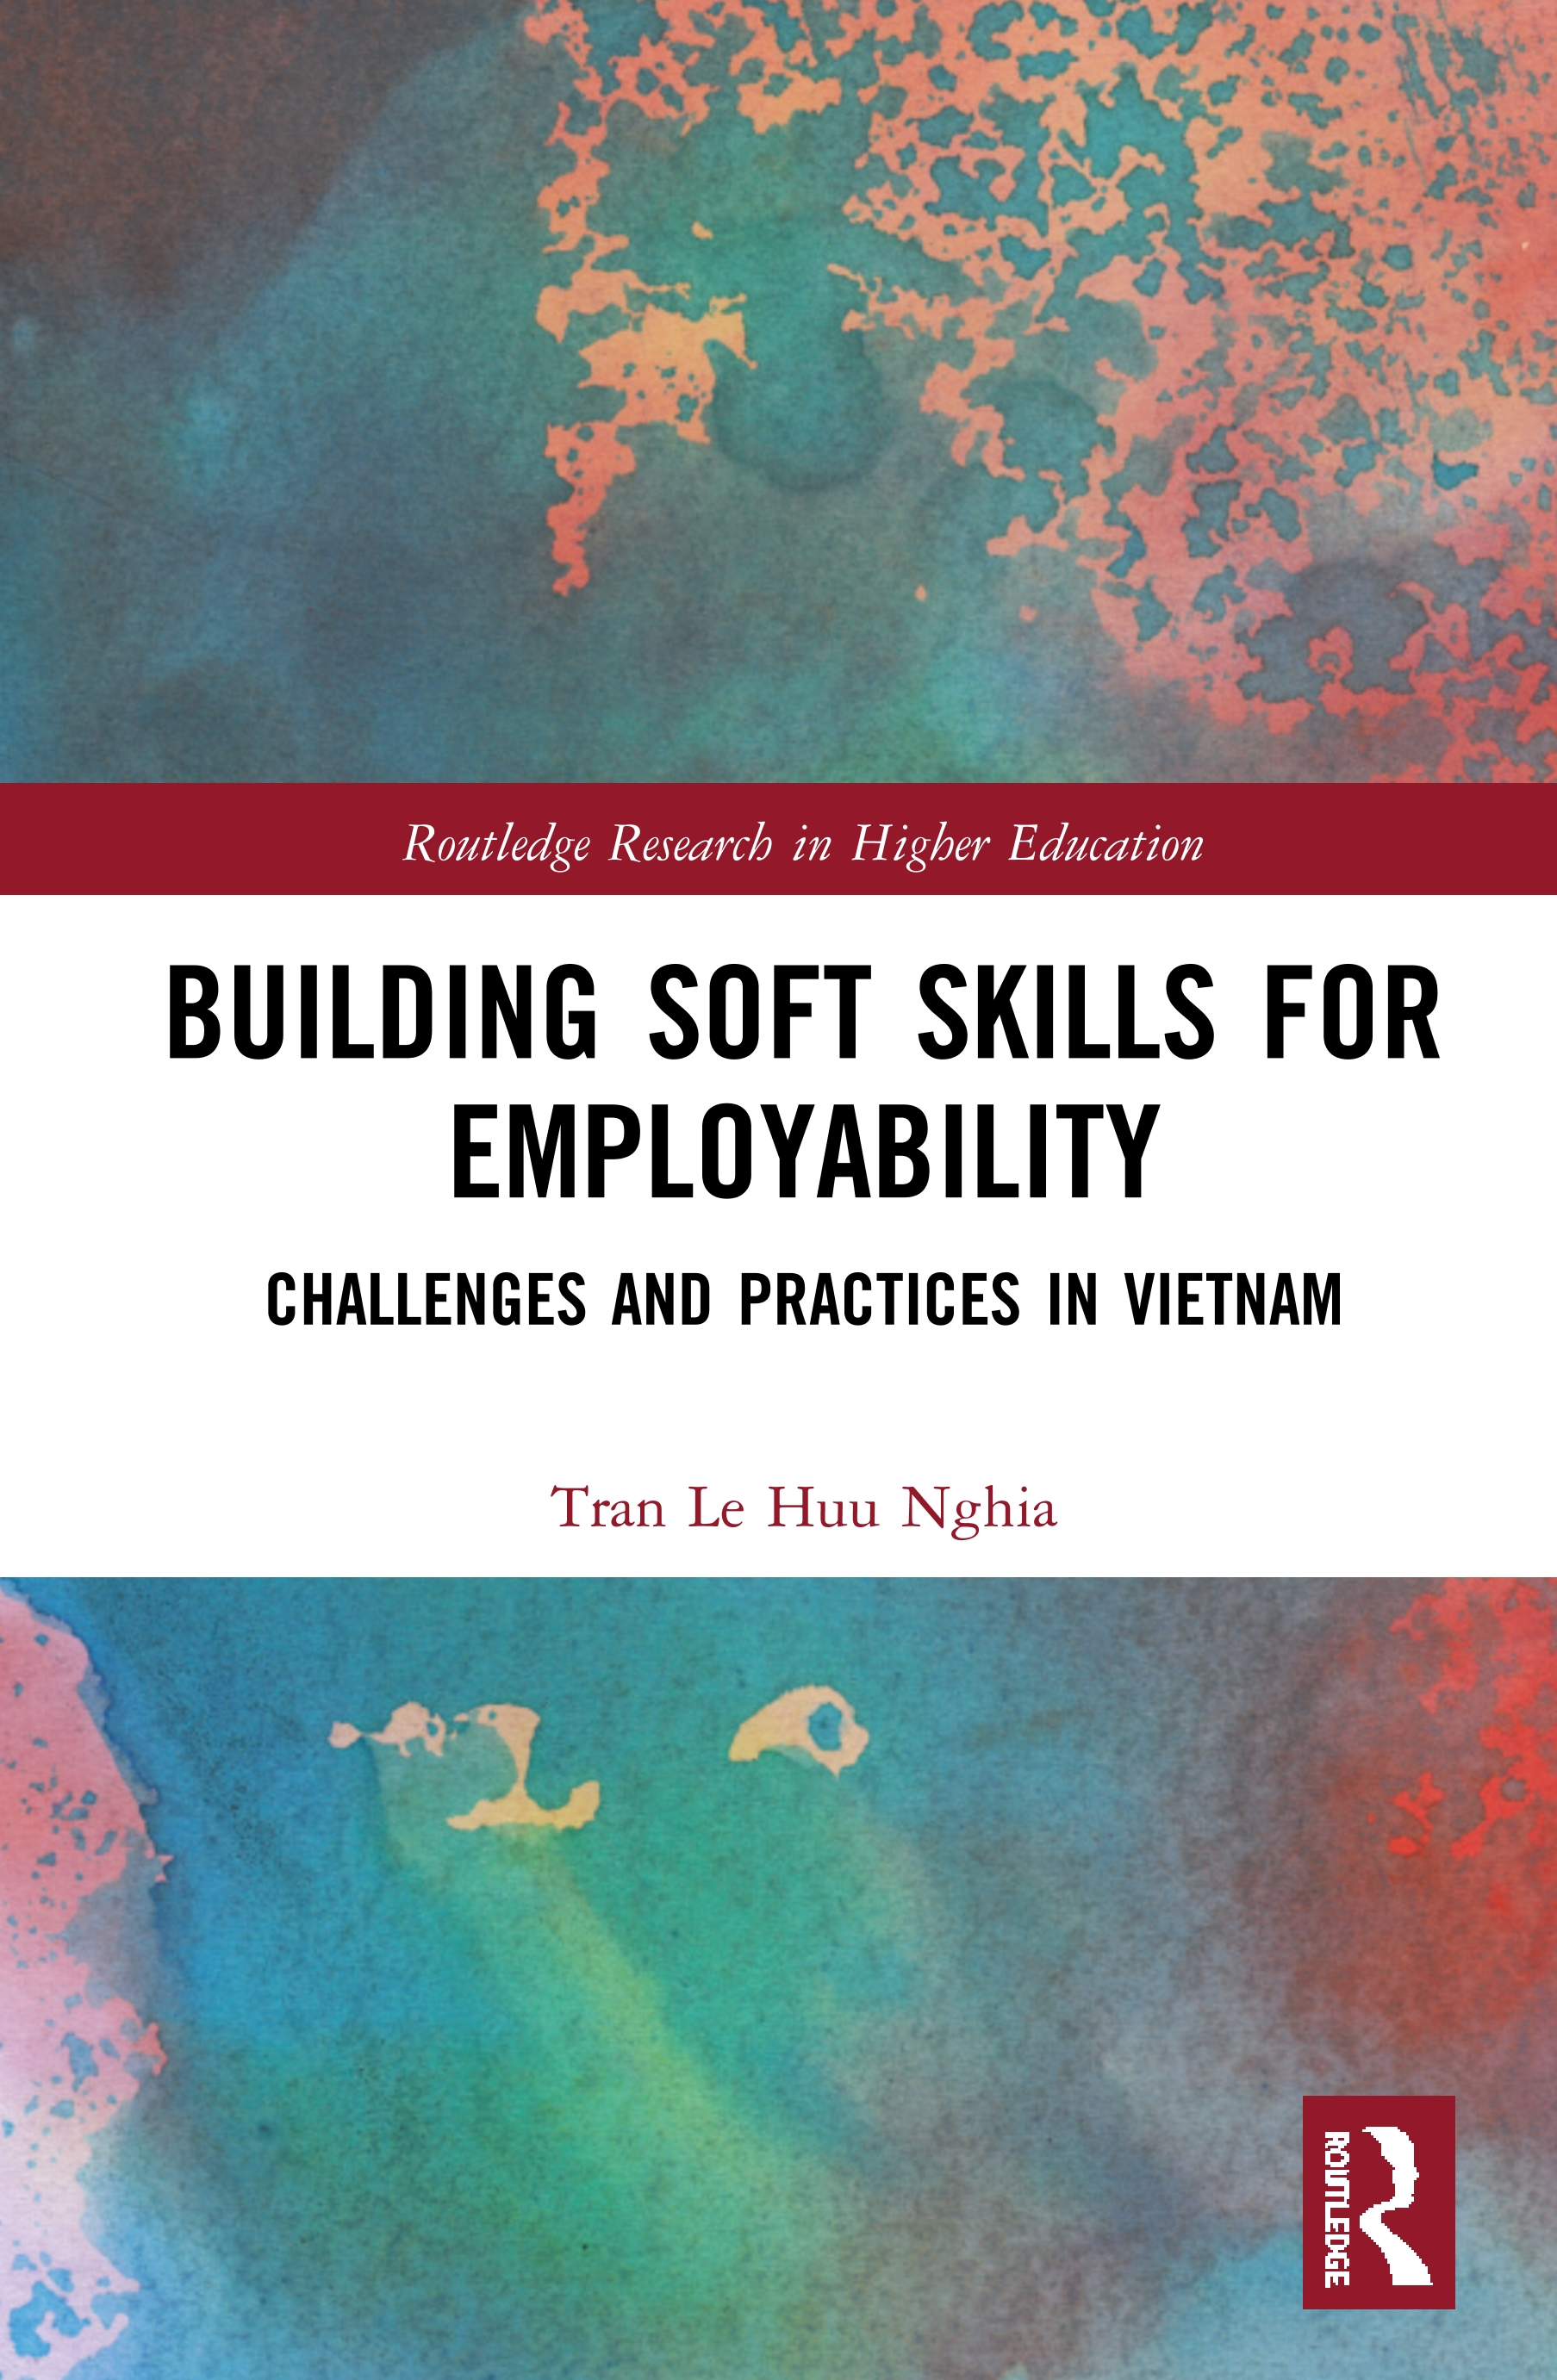 Building Soft Skills for Employability: Challenges and Practices in Vietnam book cover